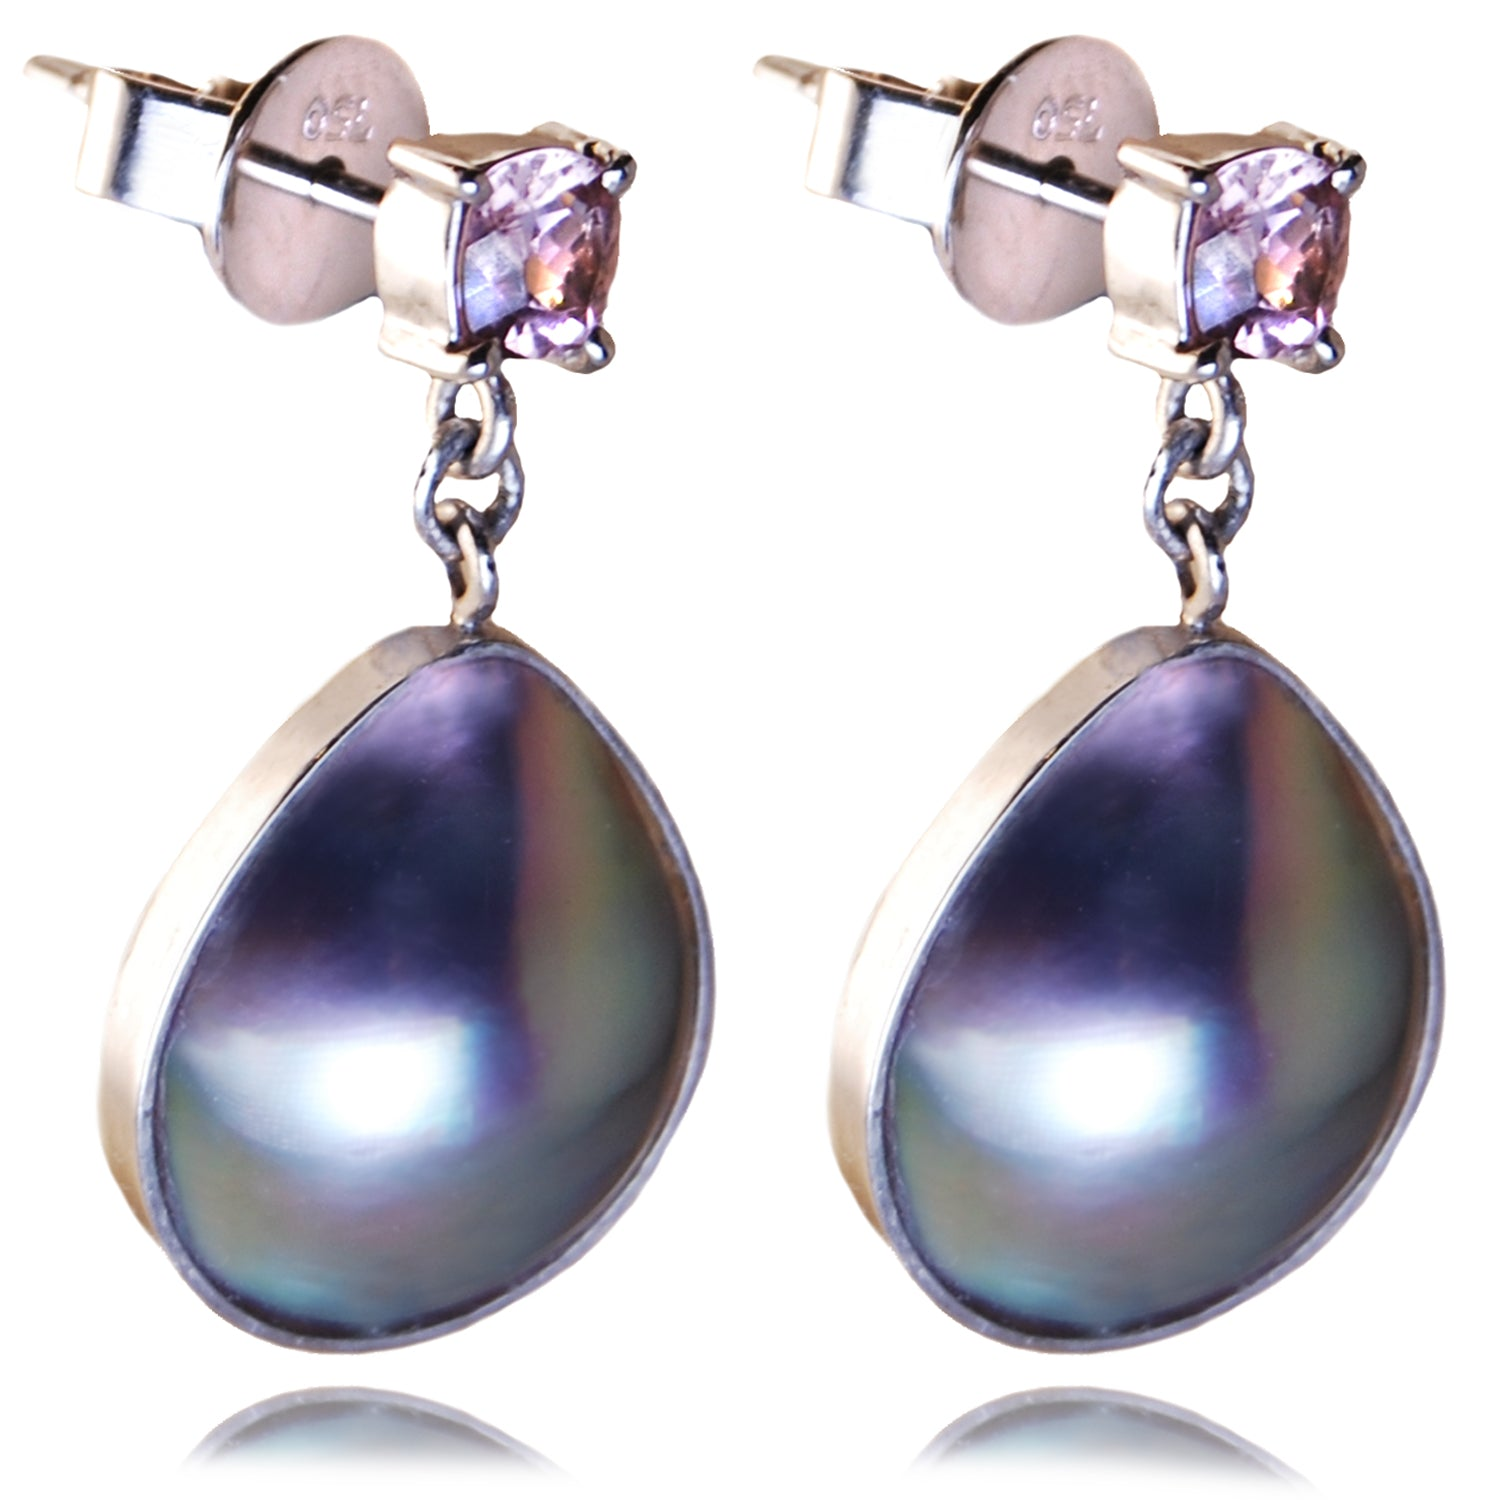 Rainbow Lipped Pearl Earrings with Baby Pink Tourmaline